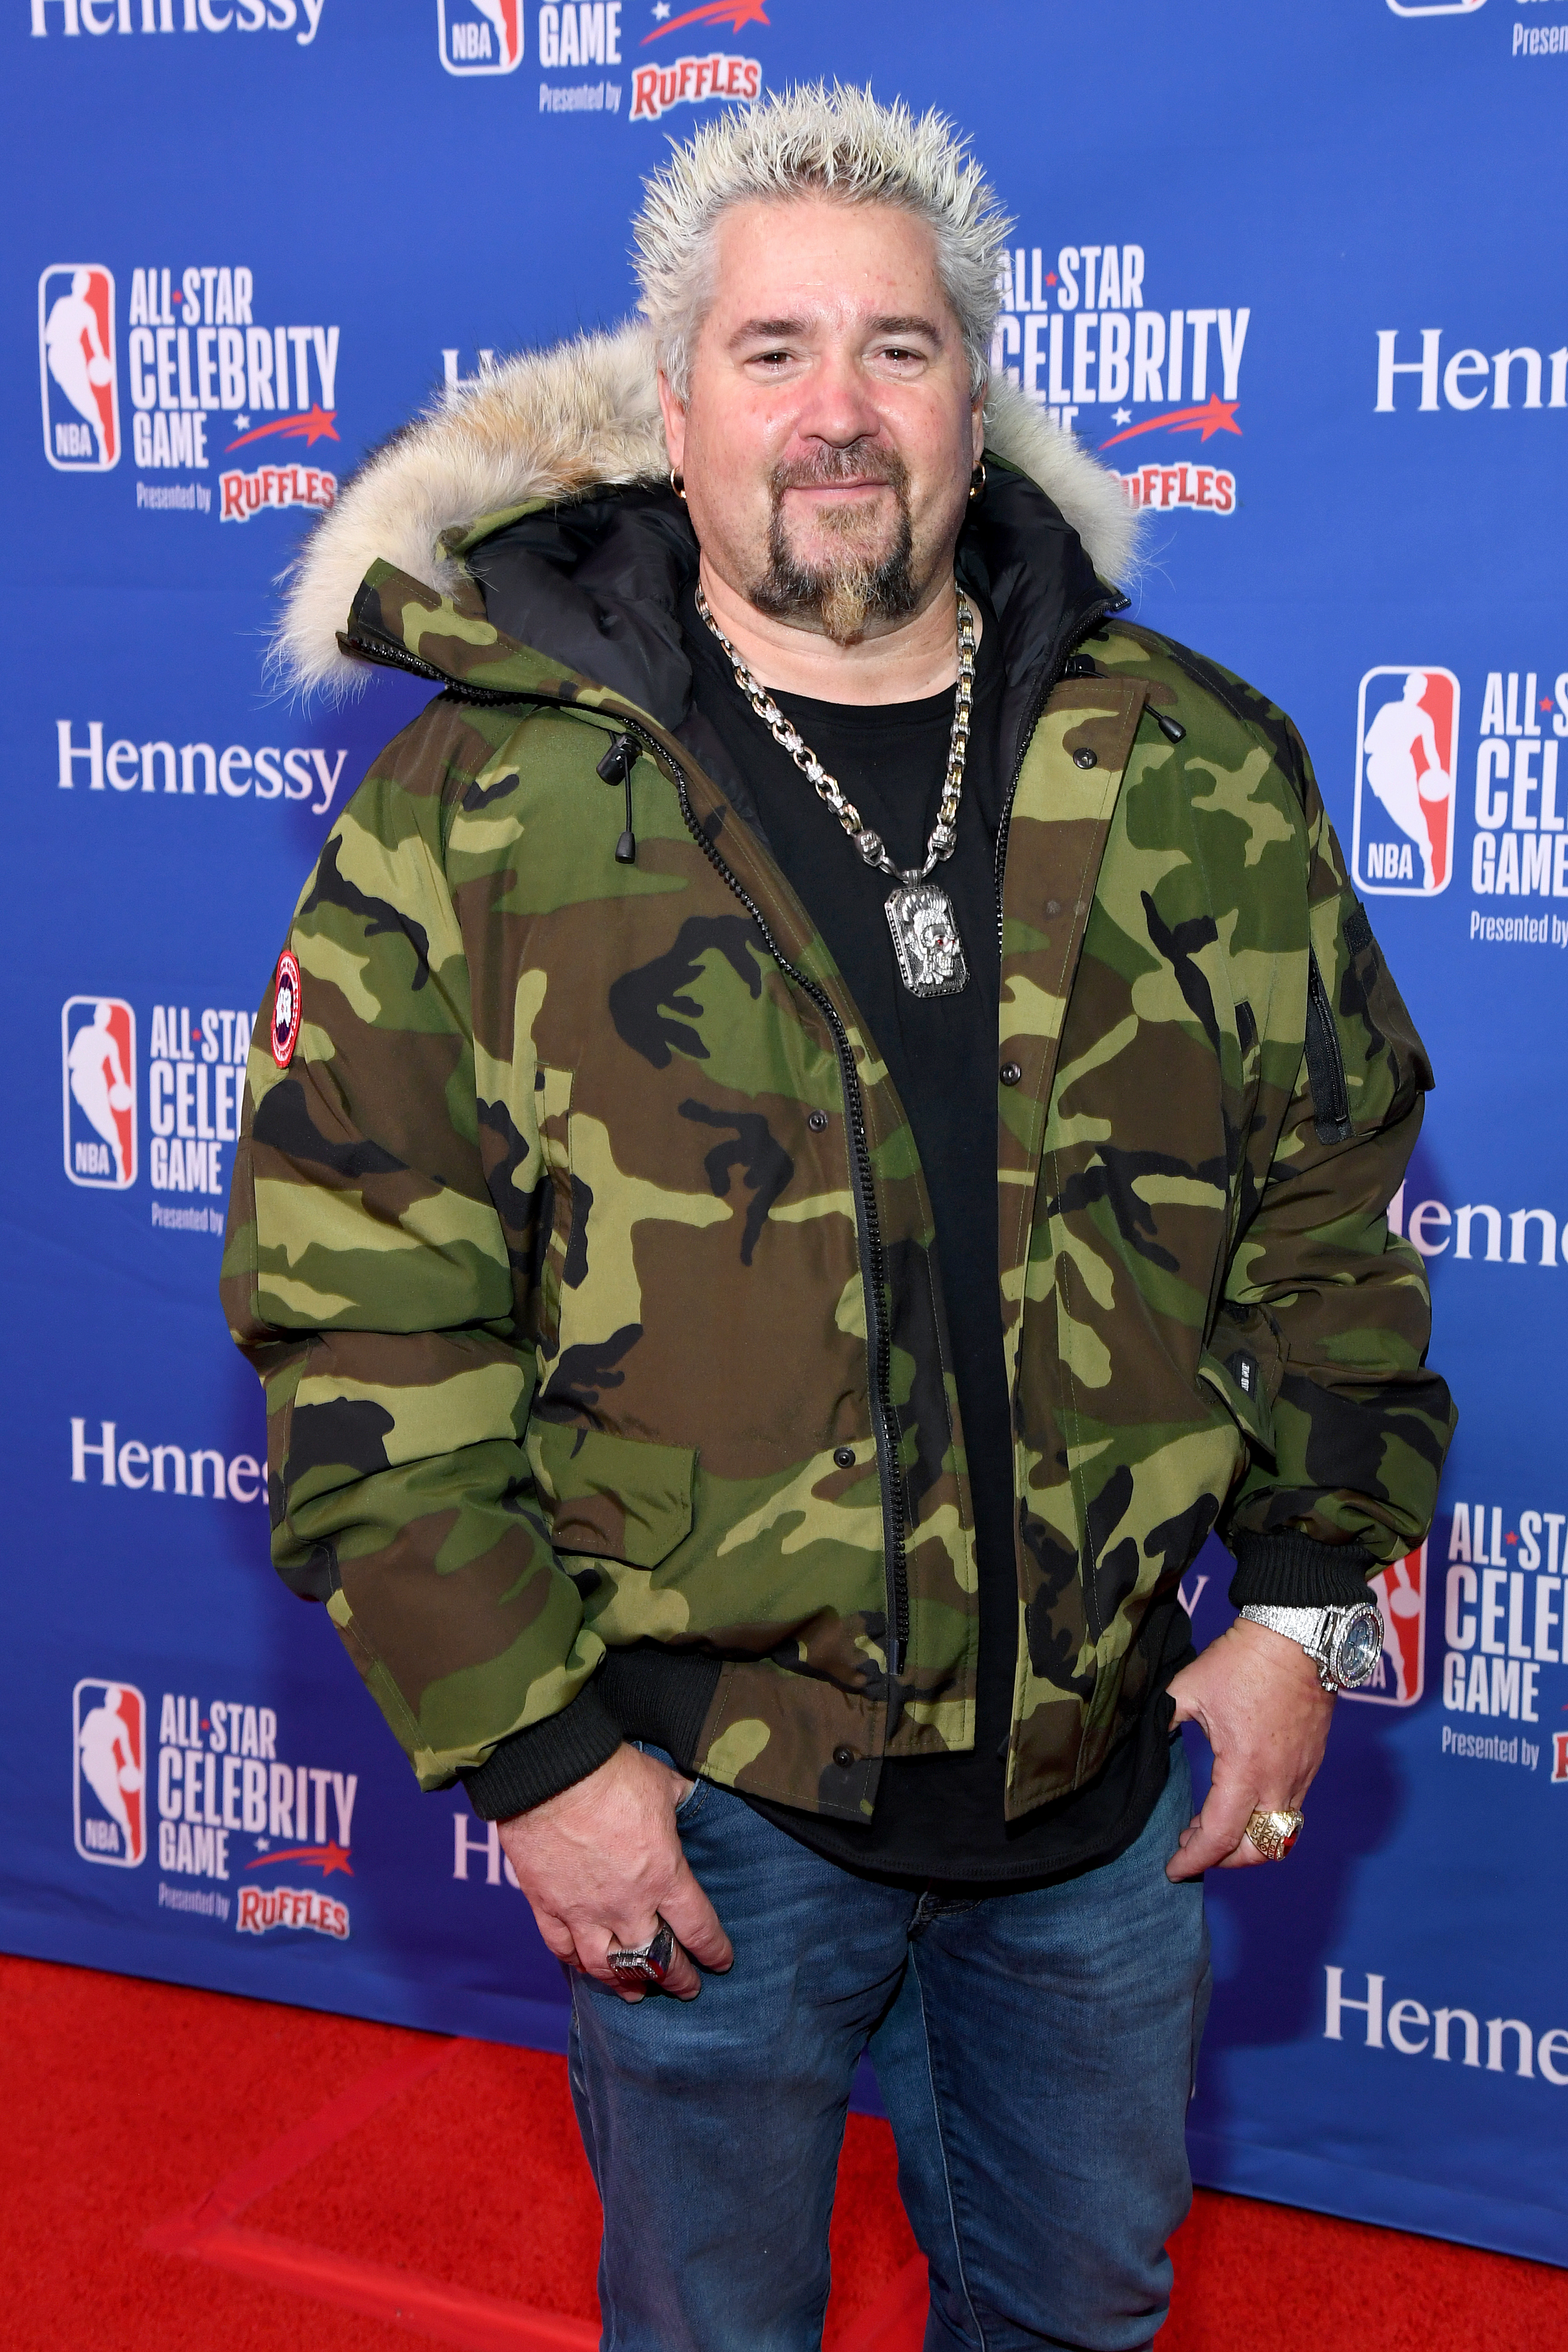 NBA All-Star Celebrity Game 2020 Presented By Ruffles